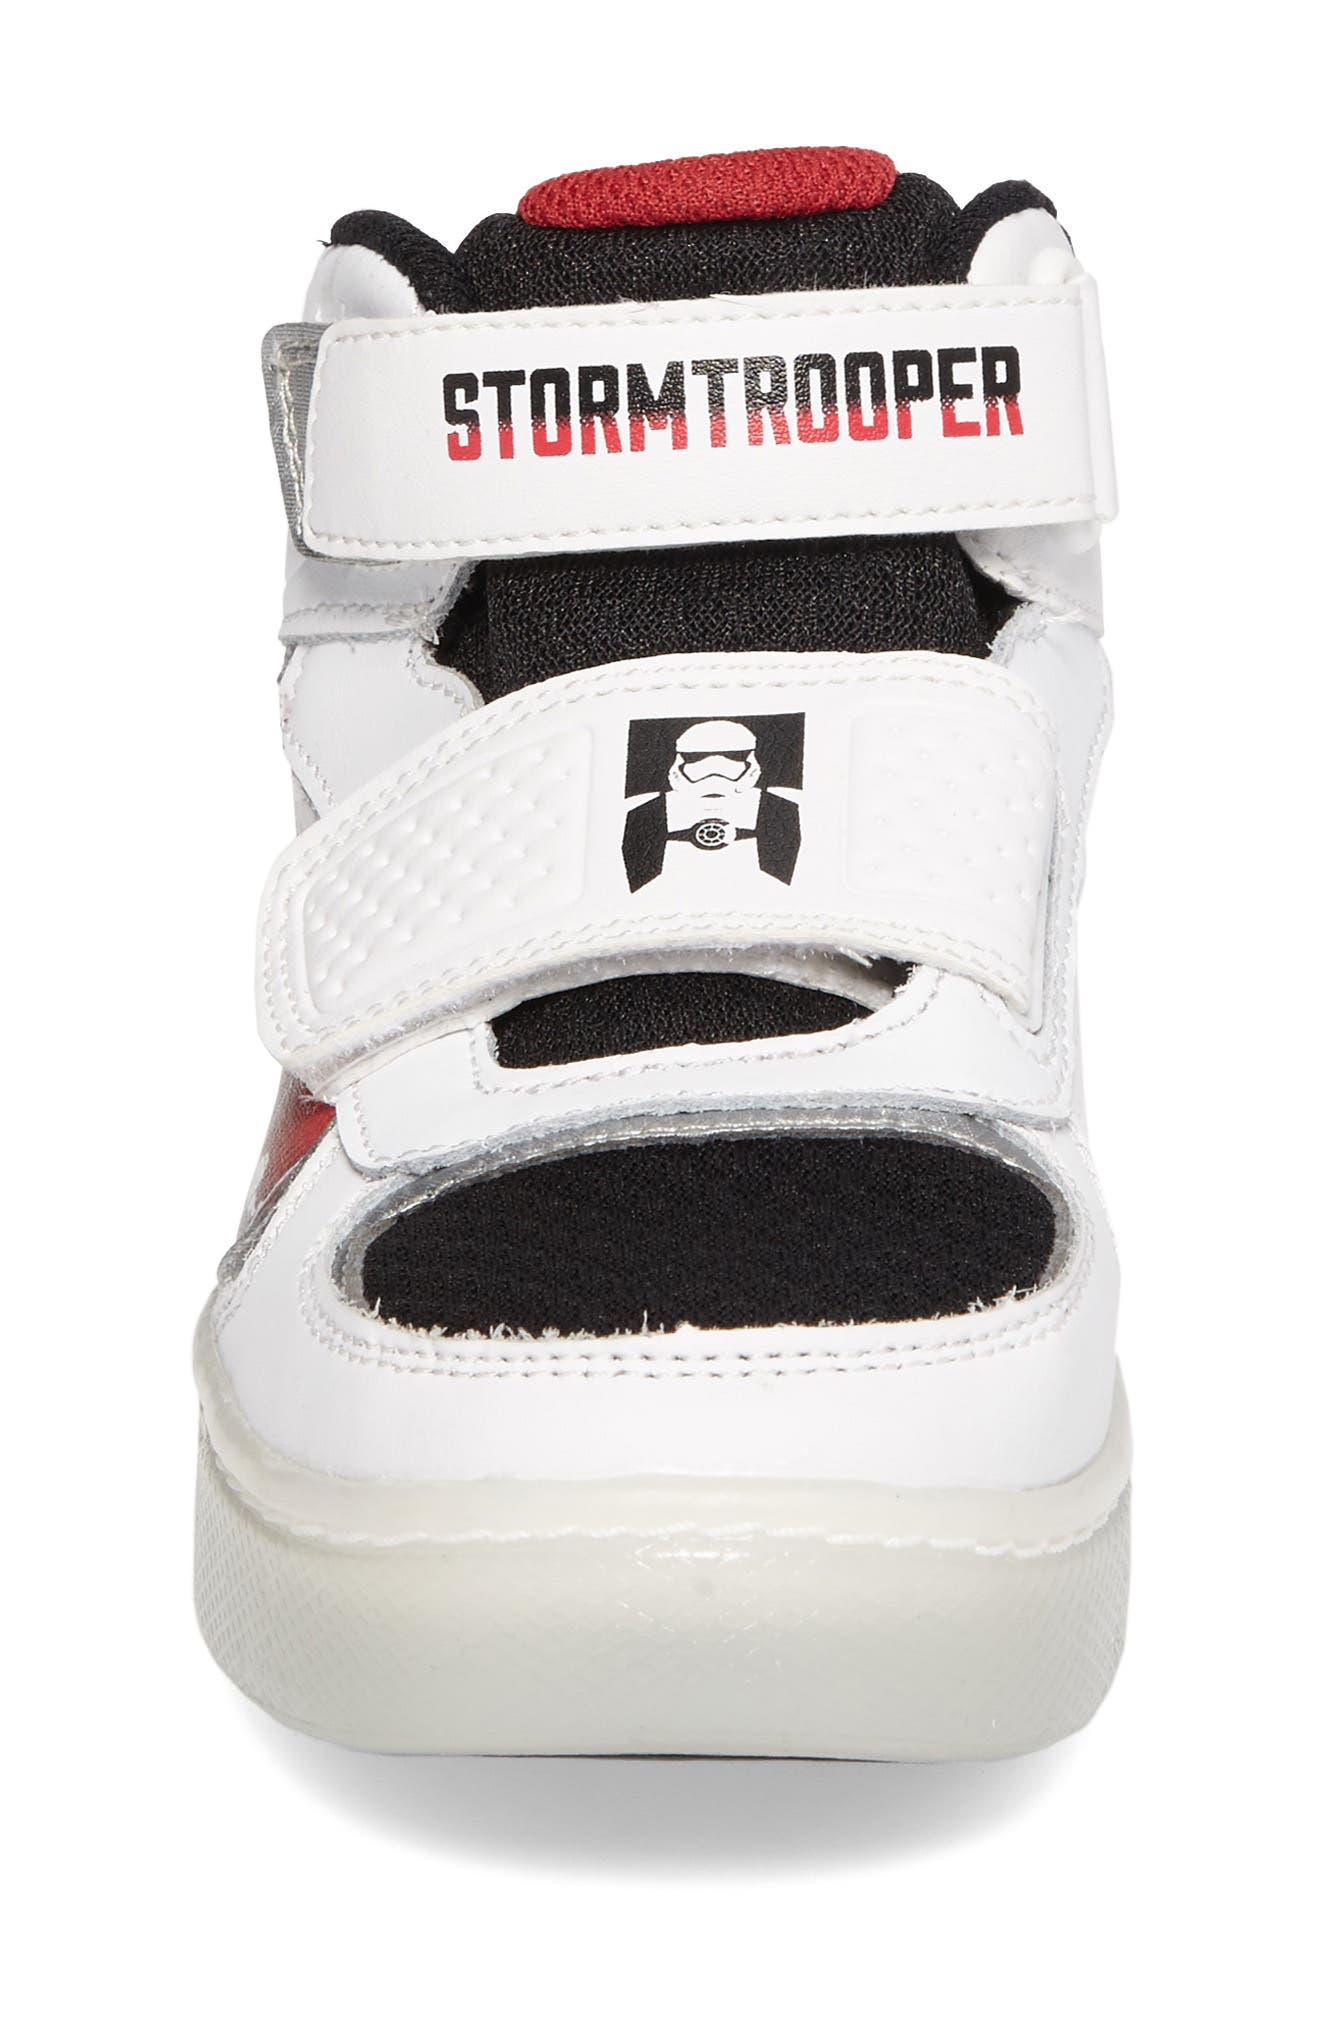 Star Wars<sup>®</sup> Stormtropper Galaxy Light-Up Sneaker,                             Alternate thumbnail 4, color,                             White/ Black